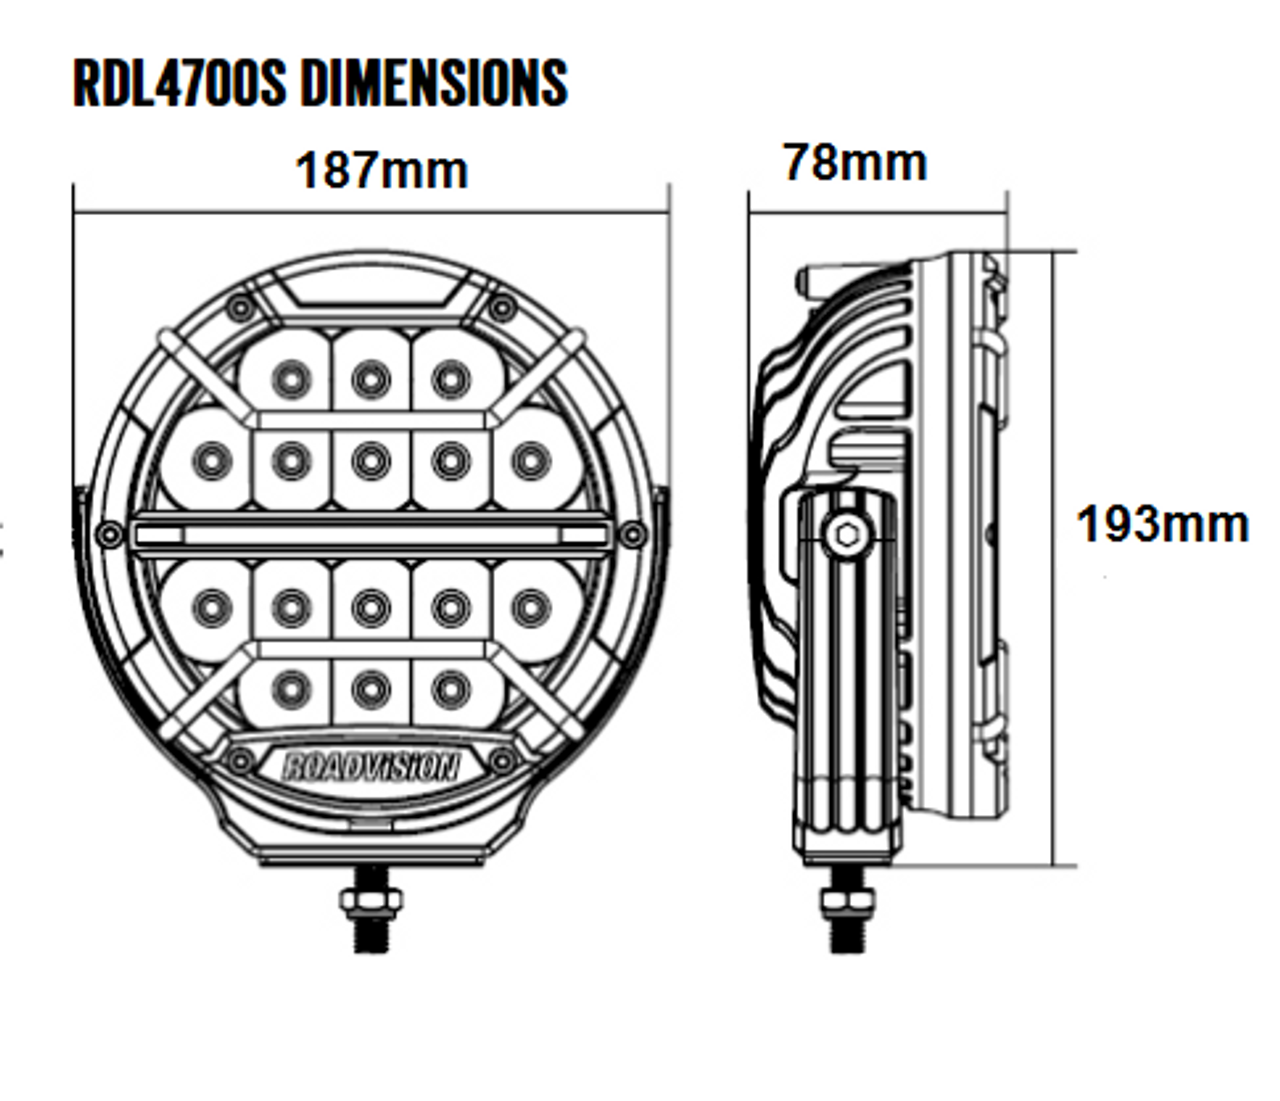 Dimensions of the 7 inch Dominator